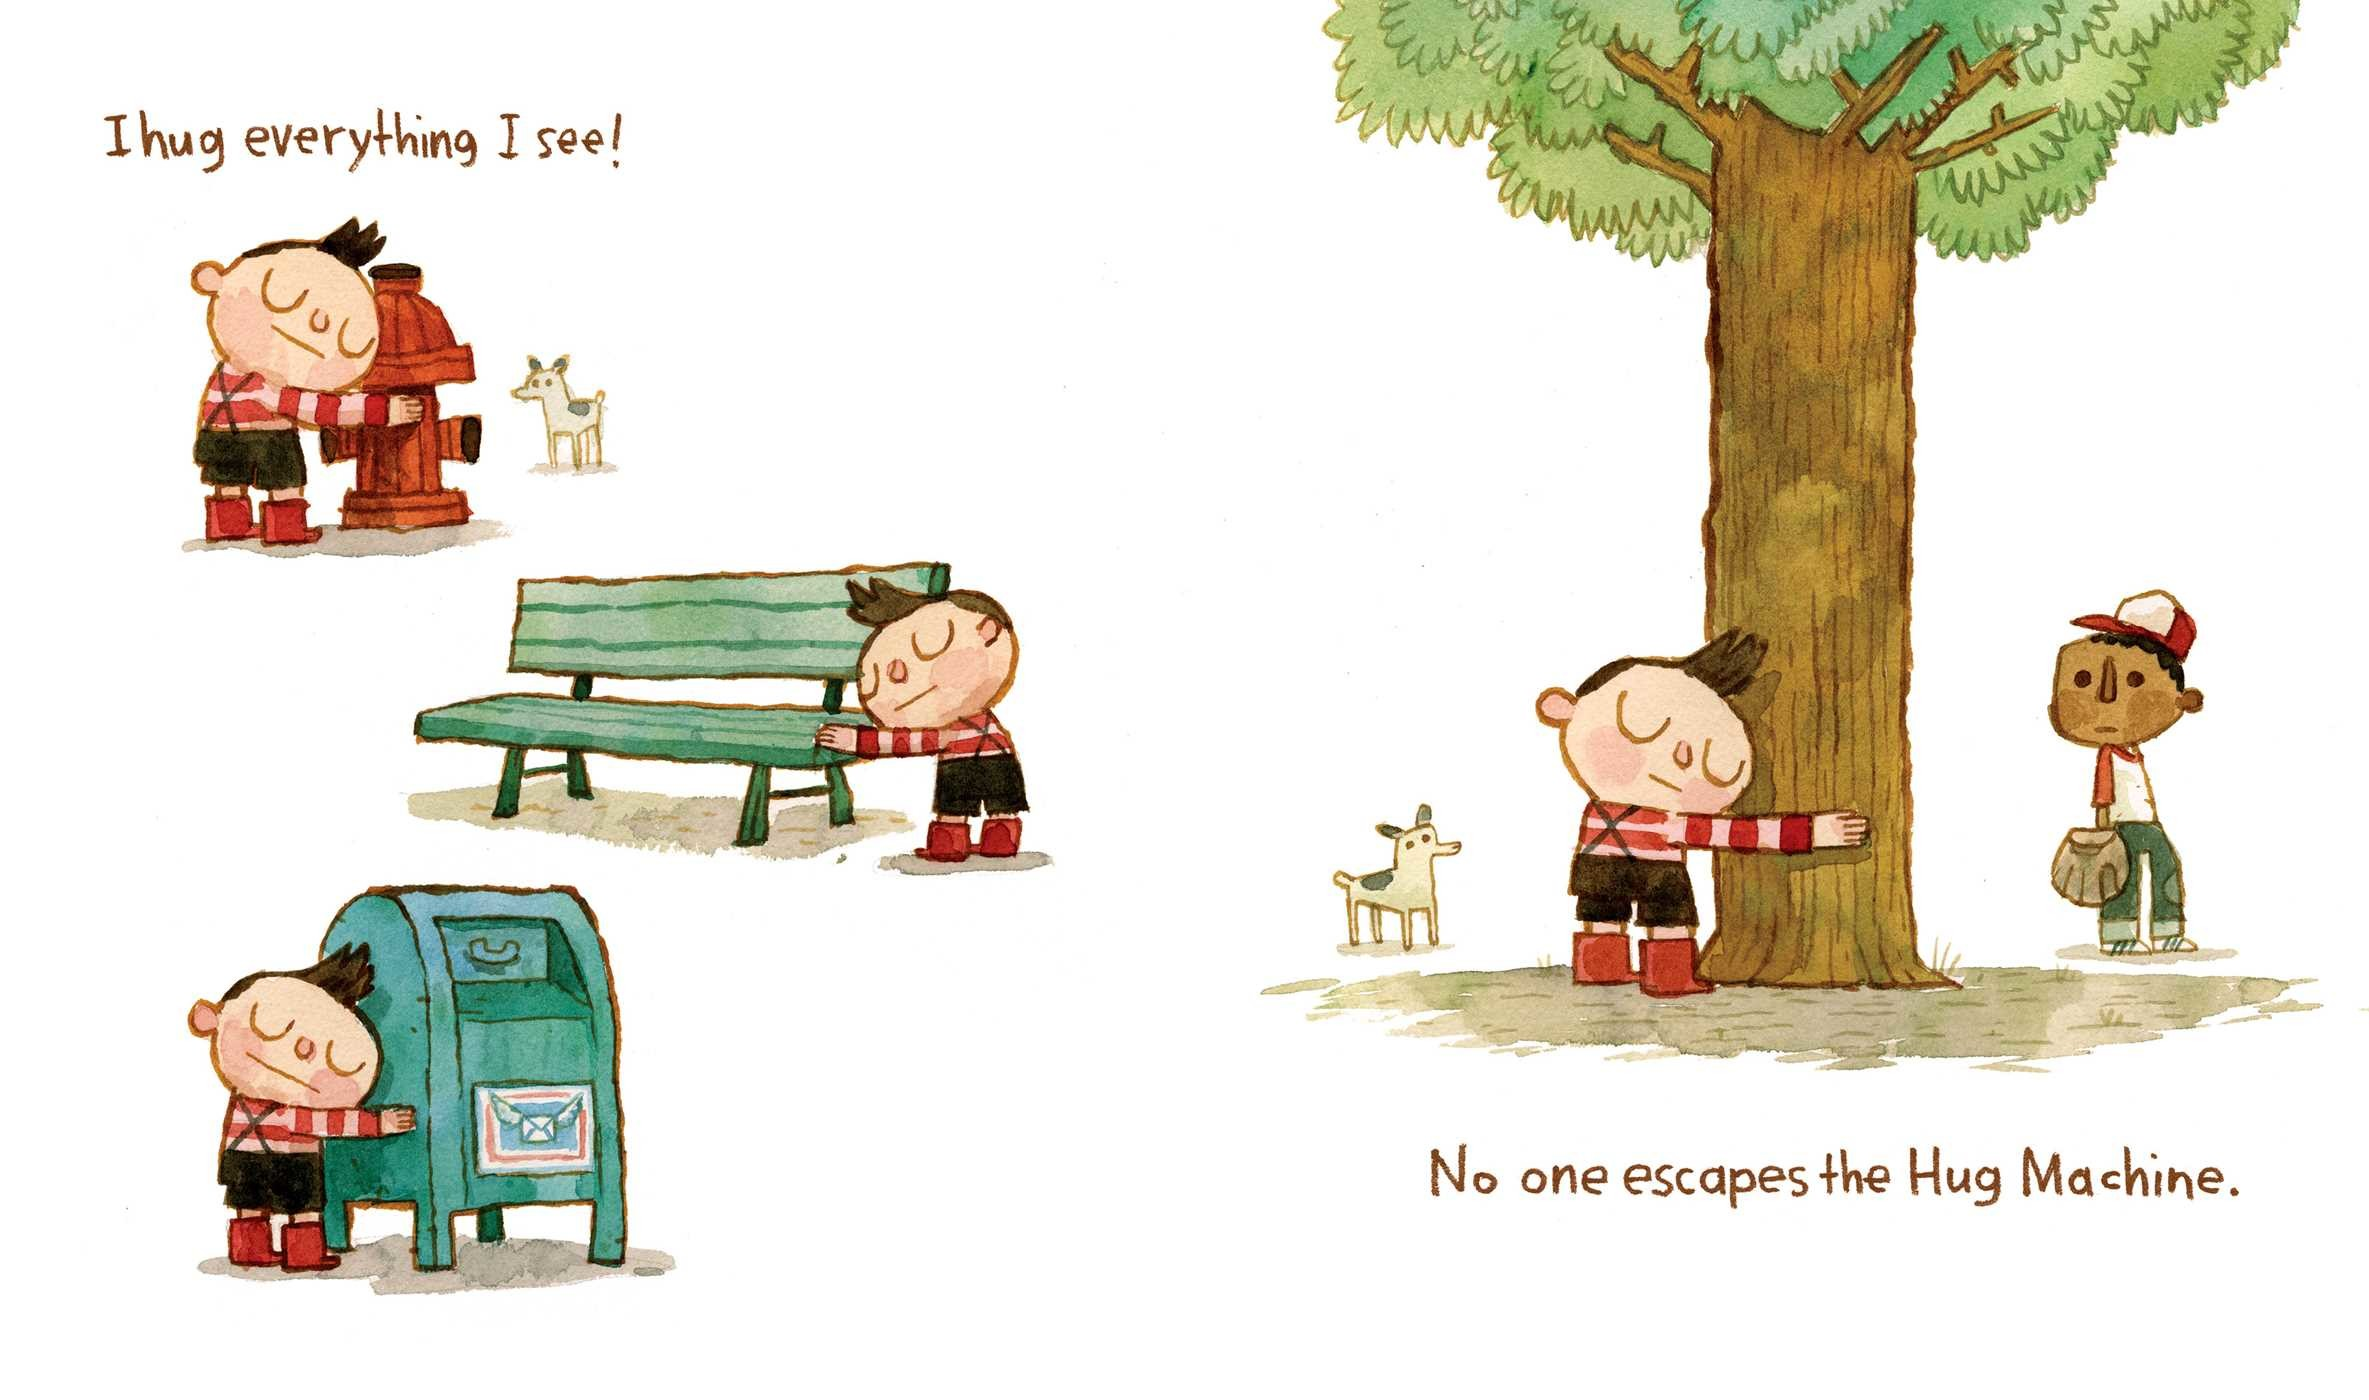 celebrate-picture-books-picture-book-review-hug-machine-fire-hydrants